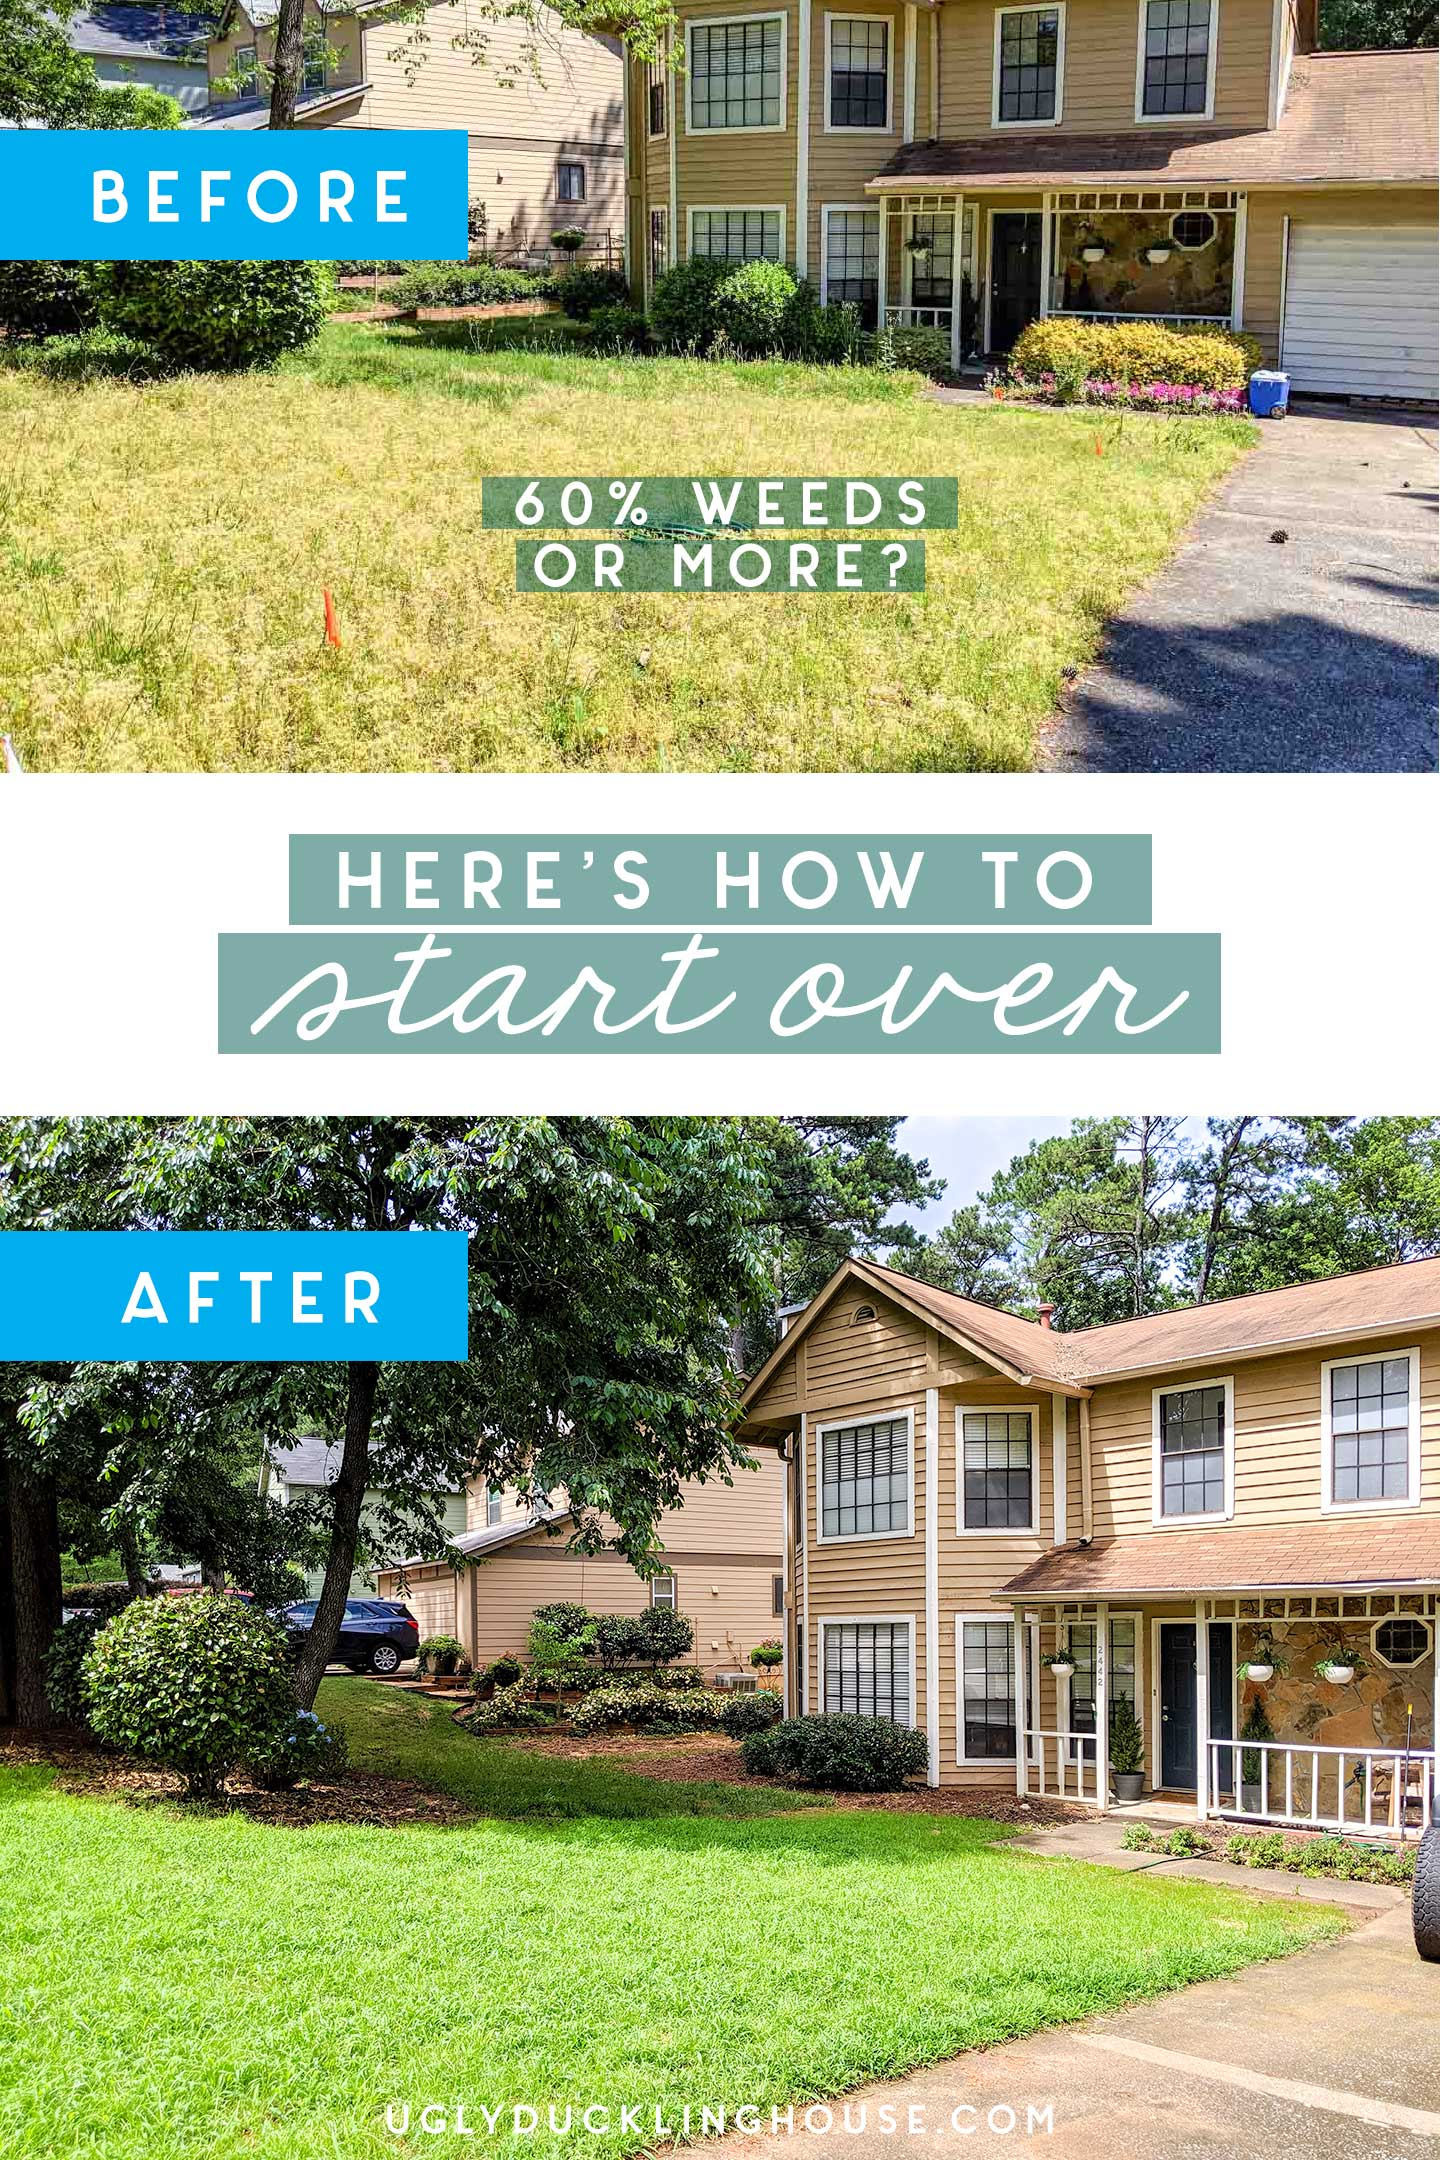 how to start over new lawn green grass - before and after